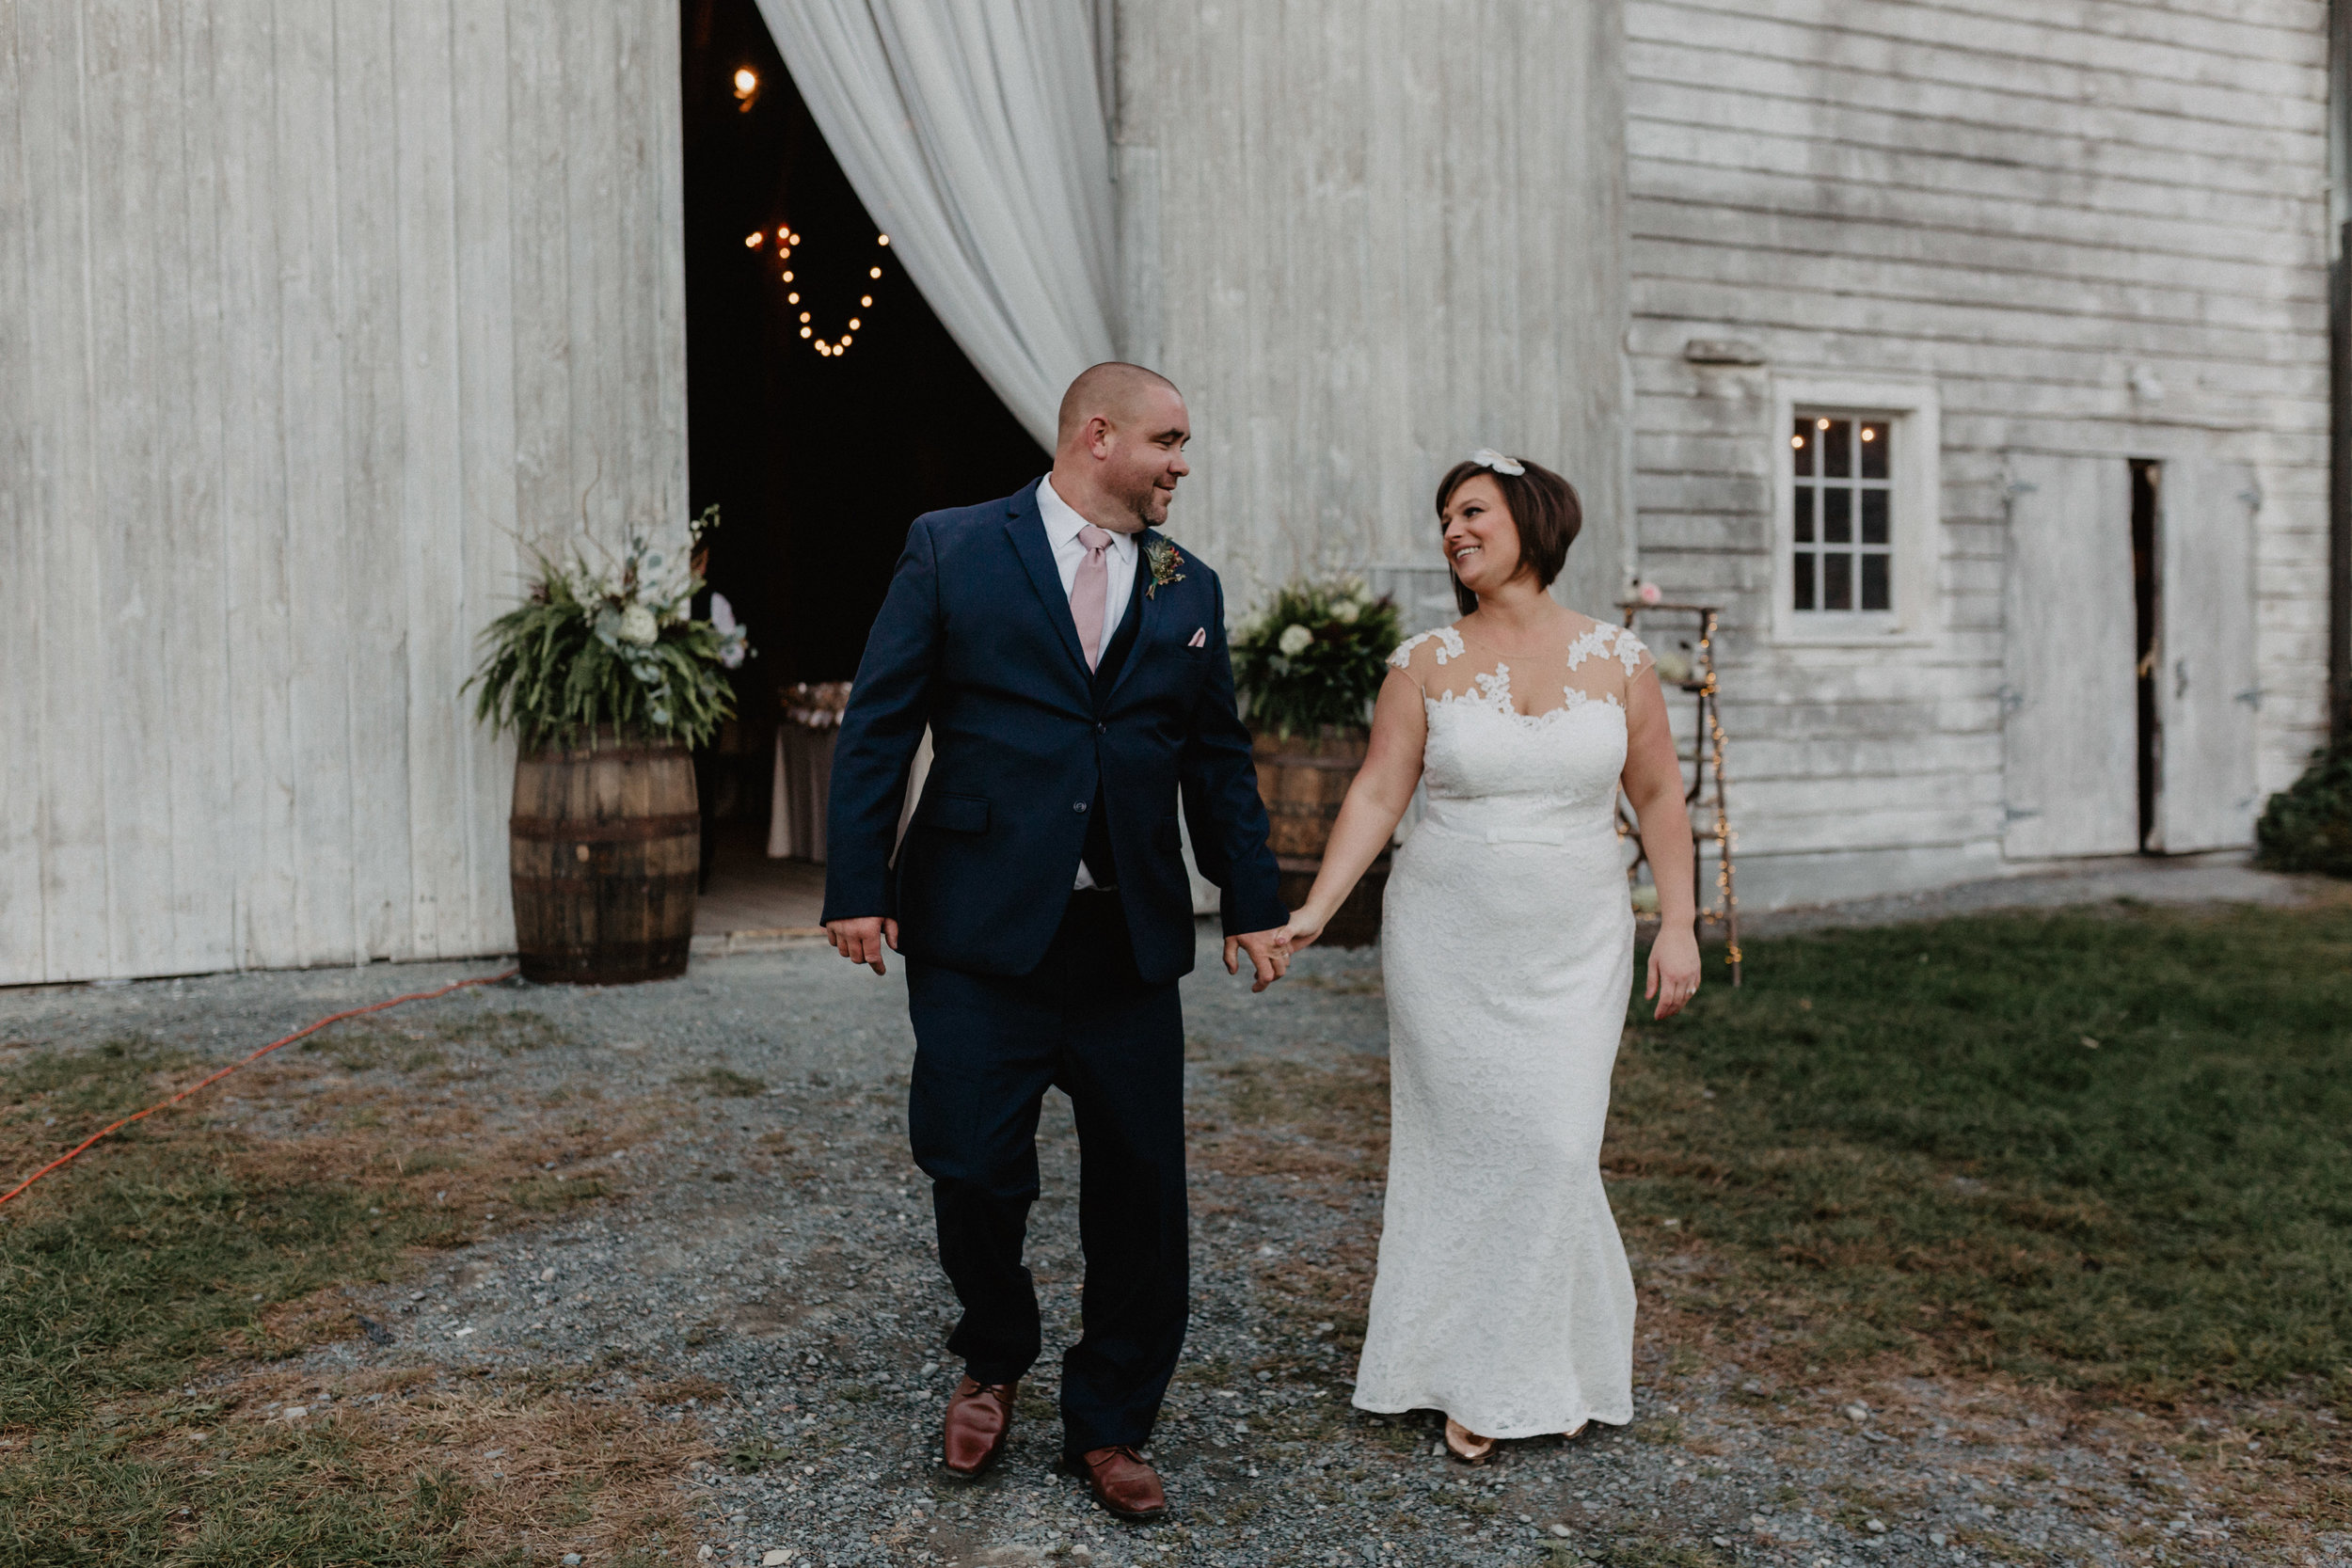 shaker_heritage_barn_wedding_036.jpg